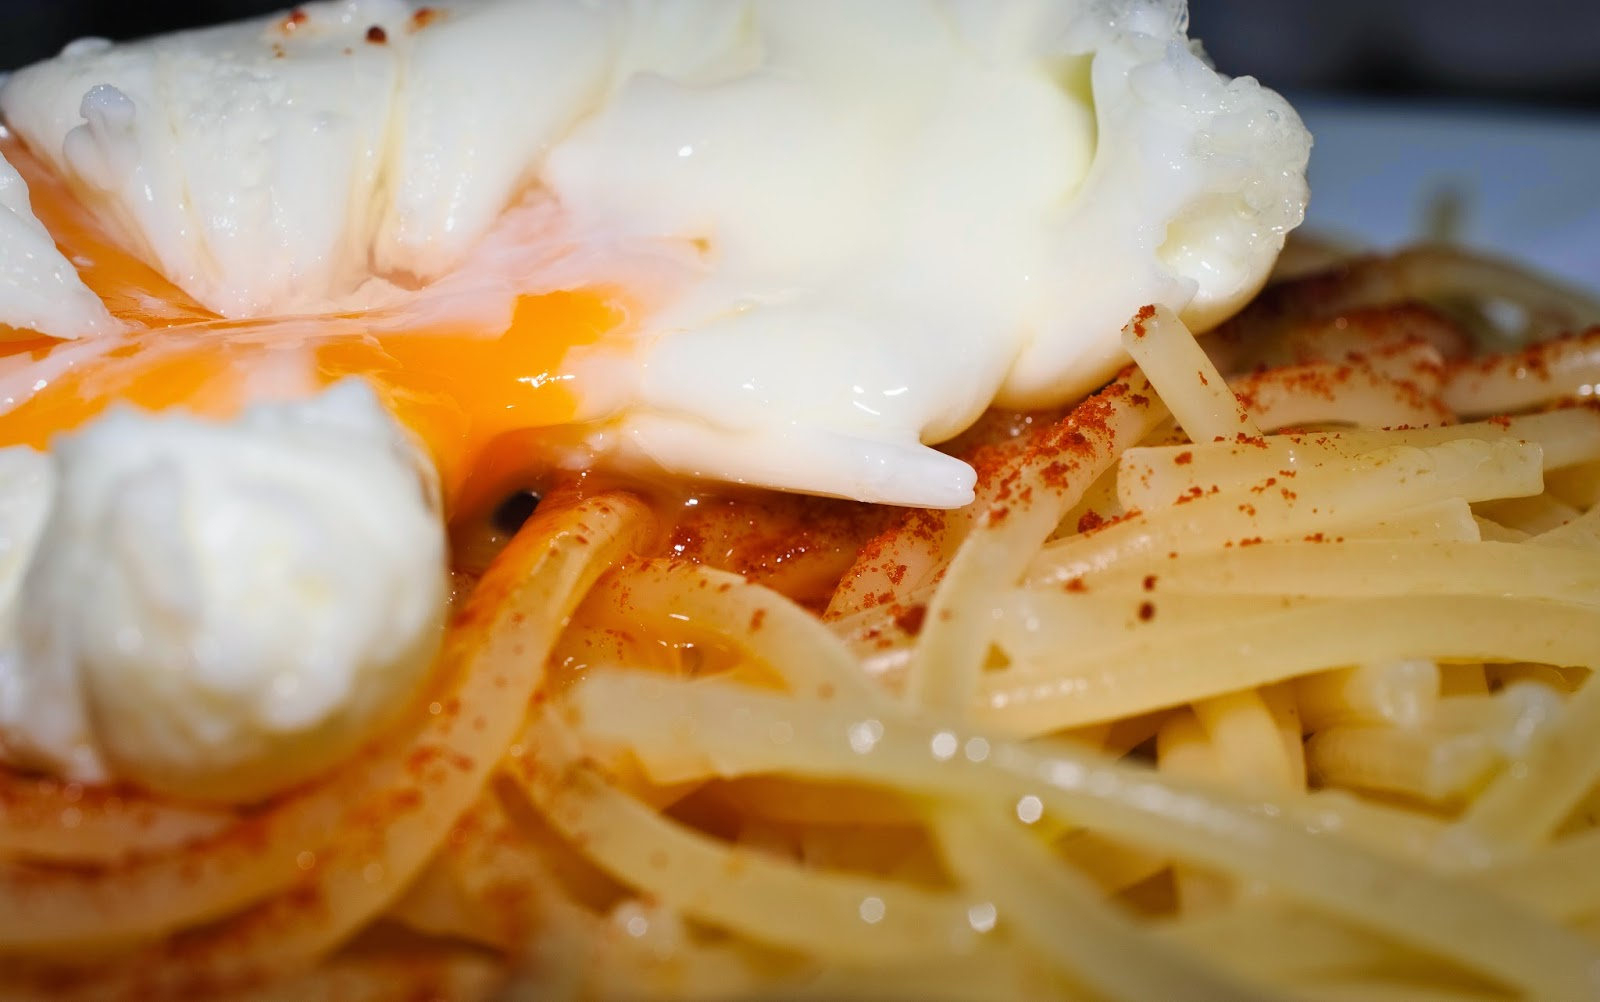 Espaguetis con huevo escalfado; spaghetti with poached egg